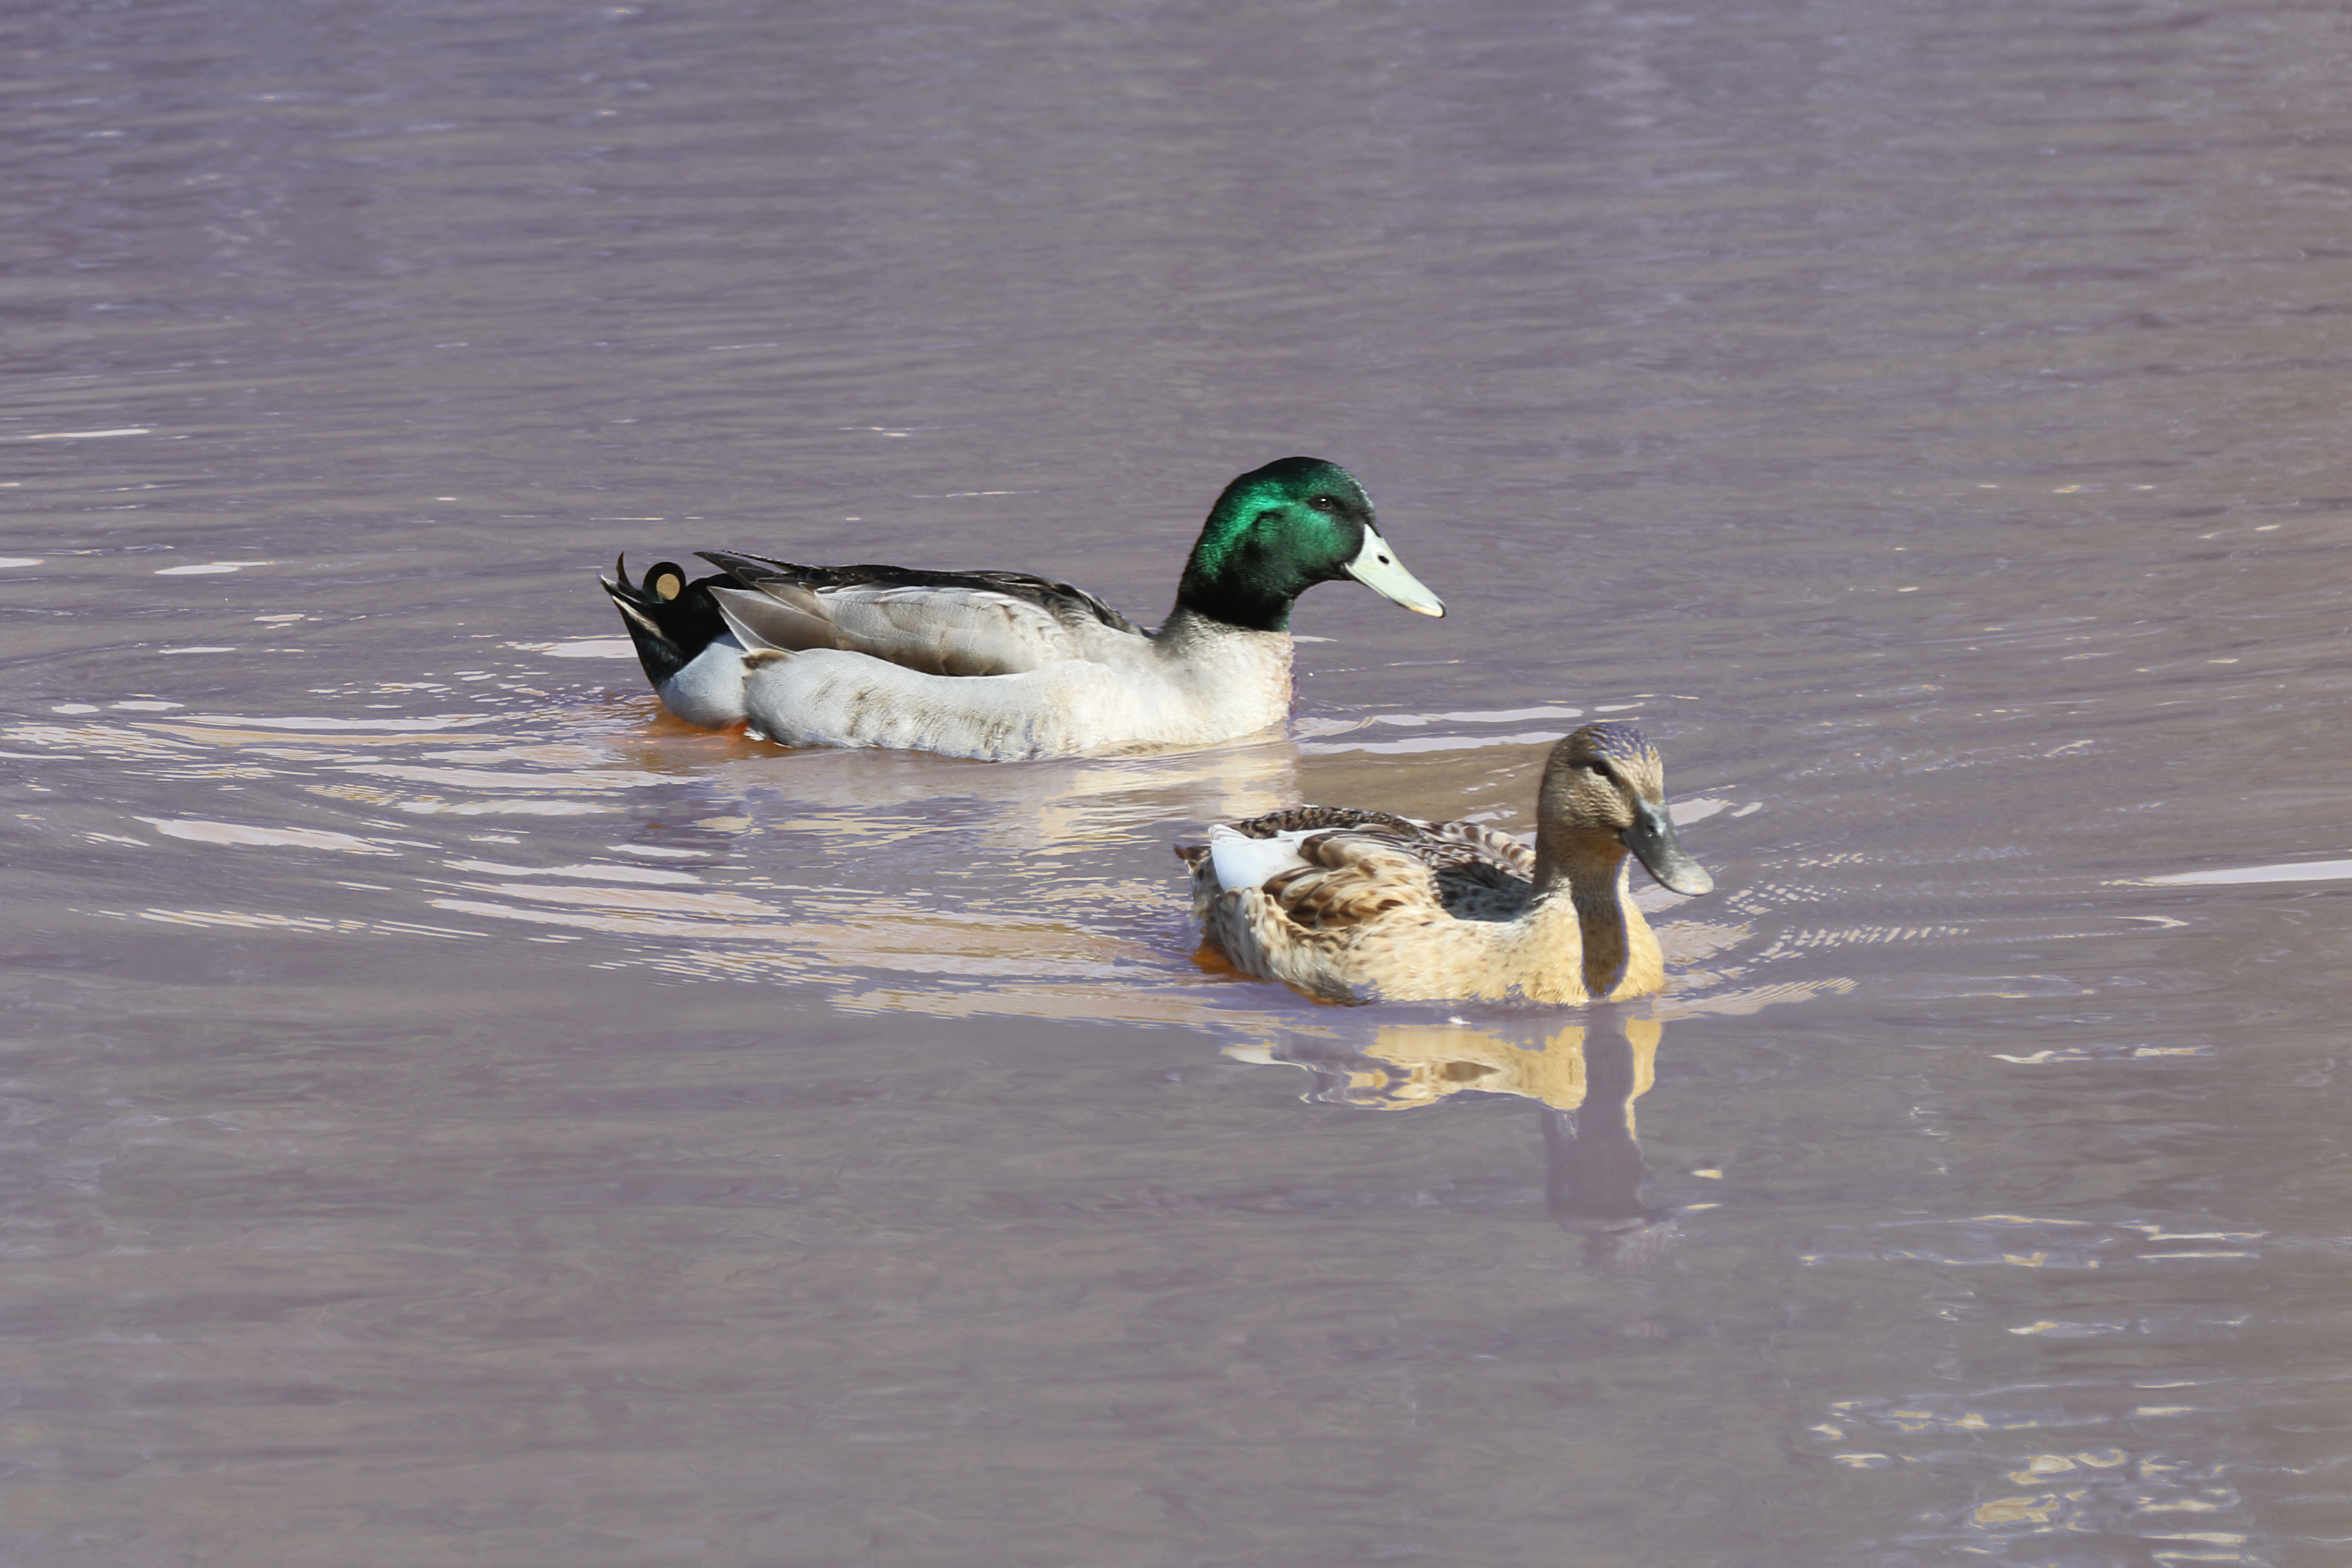 A male and female duck swimming next to each other in a pond